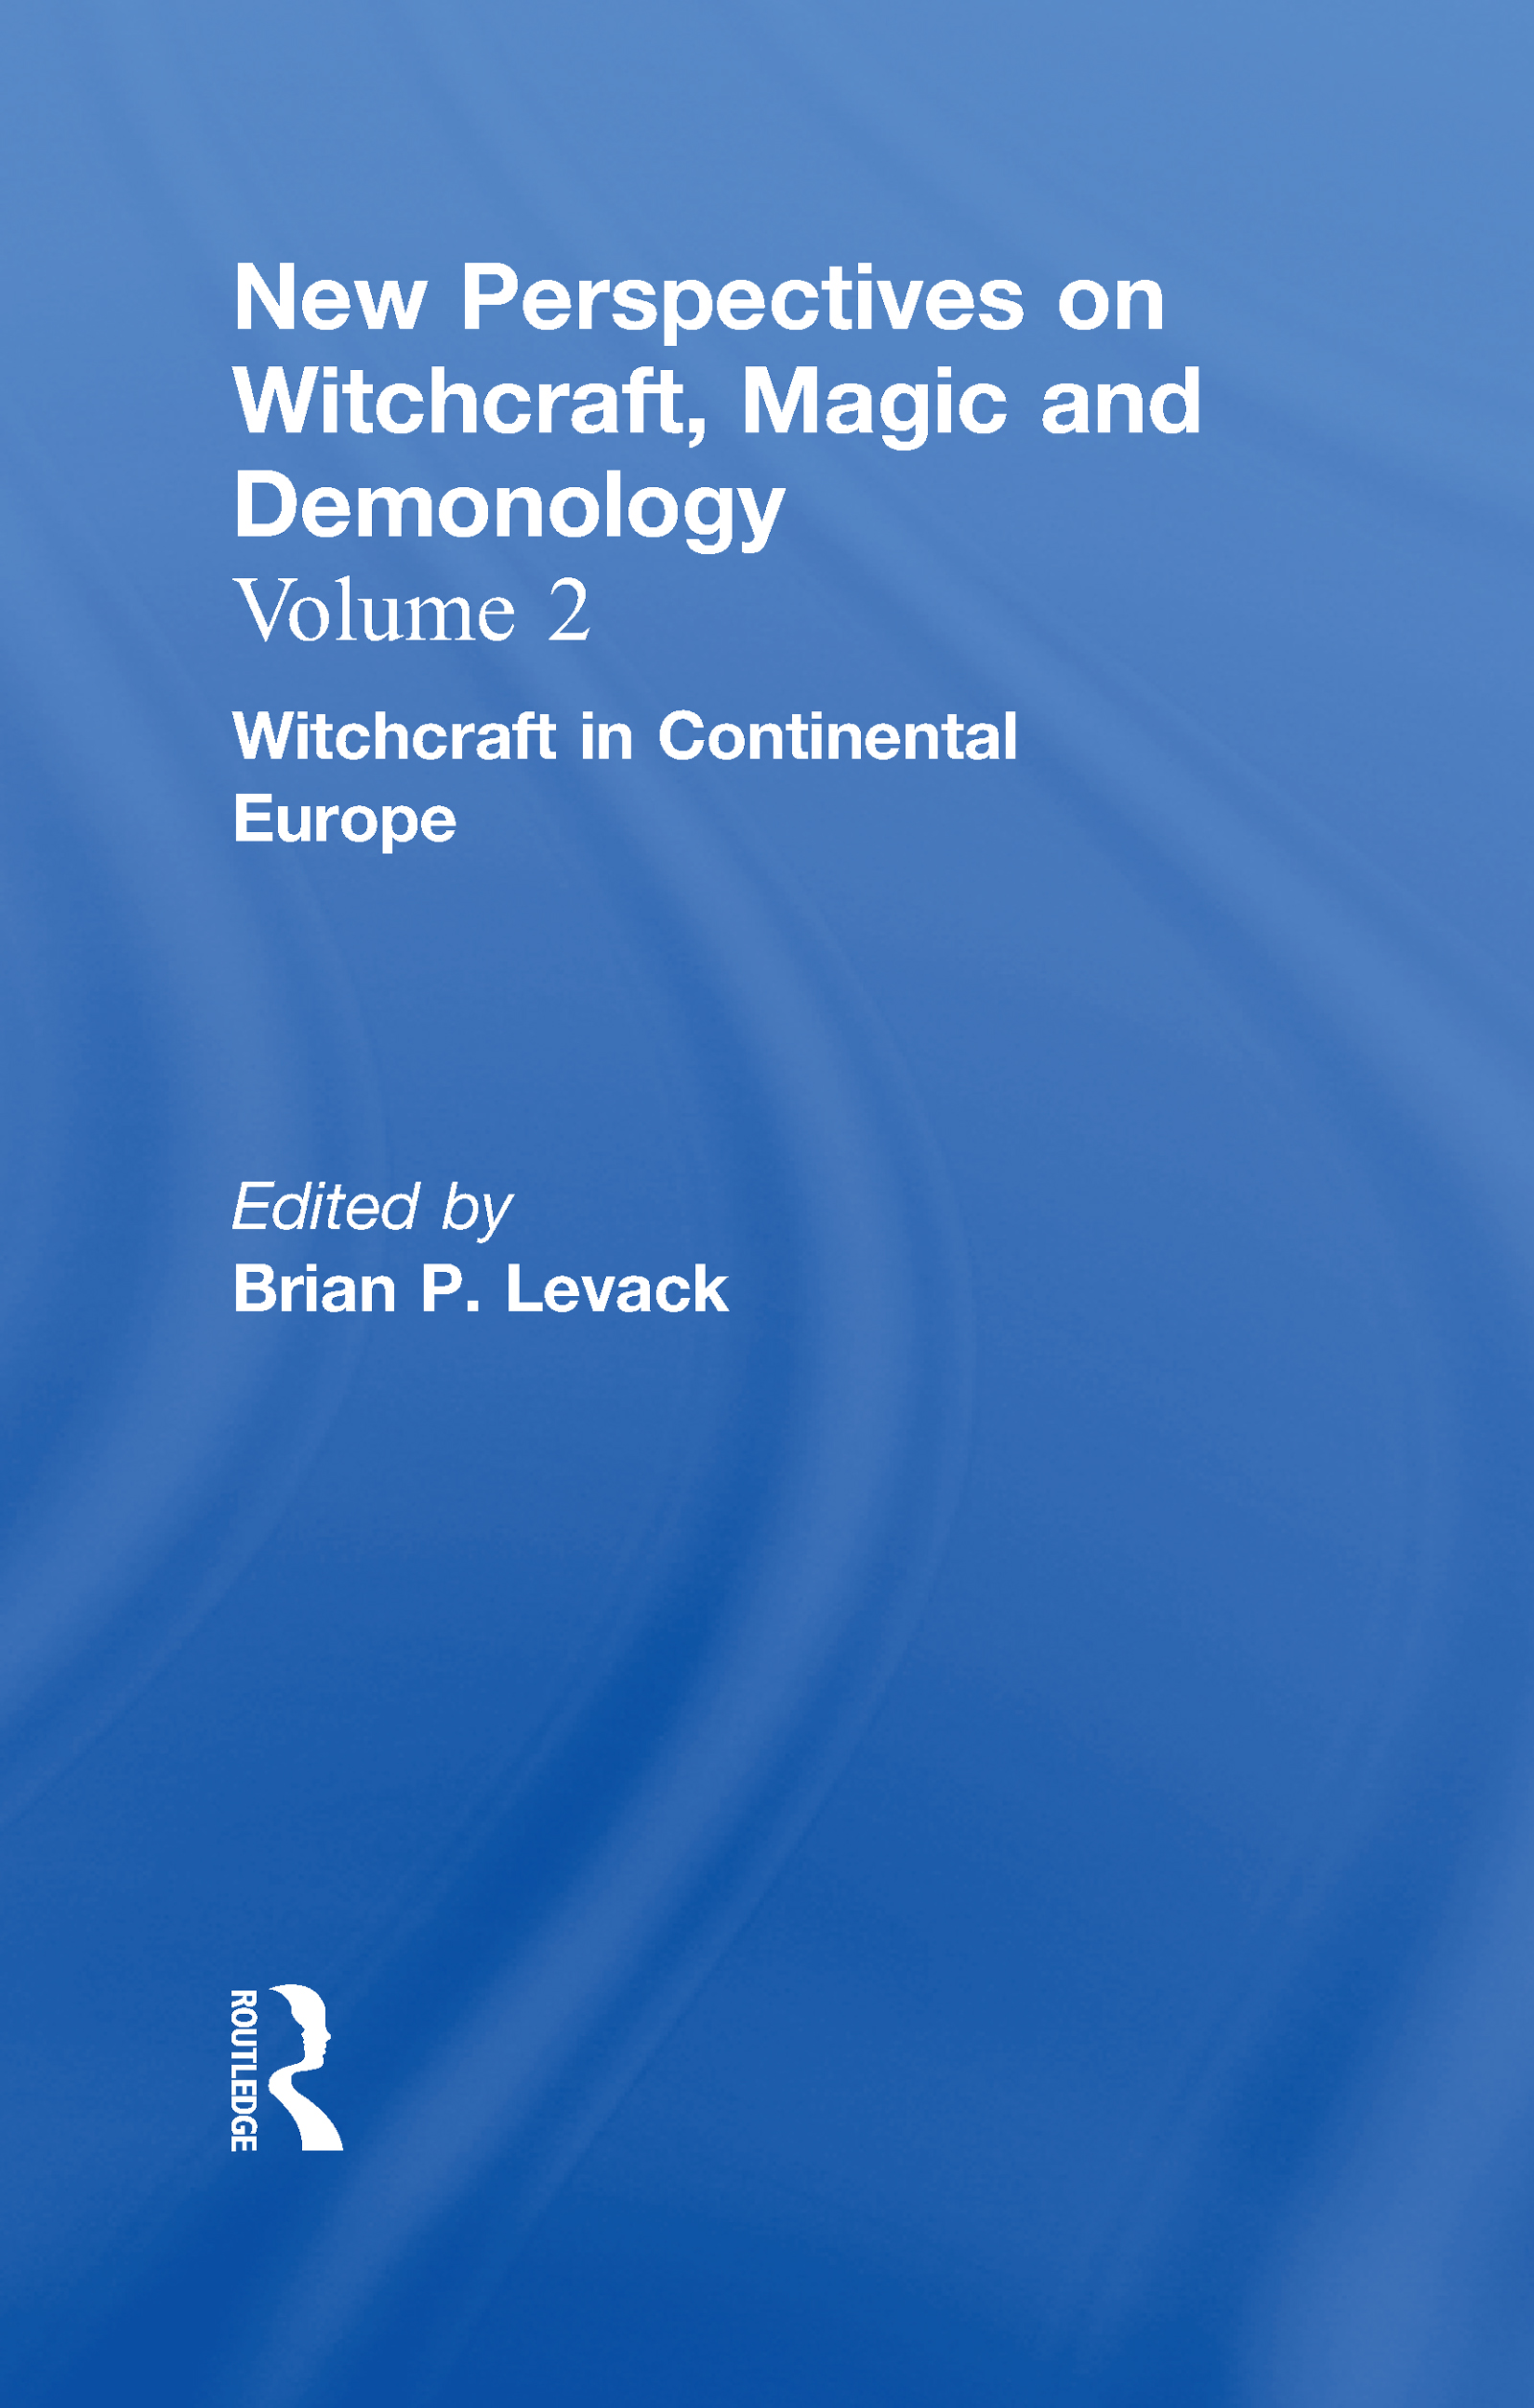 Witchcraft in Continental Europe